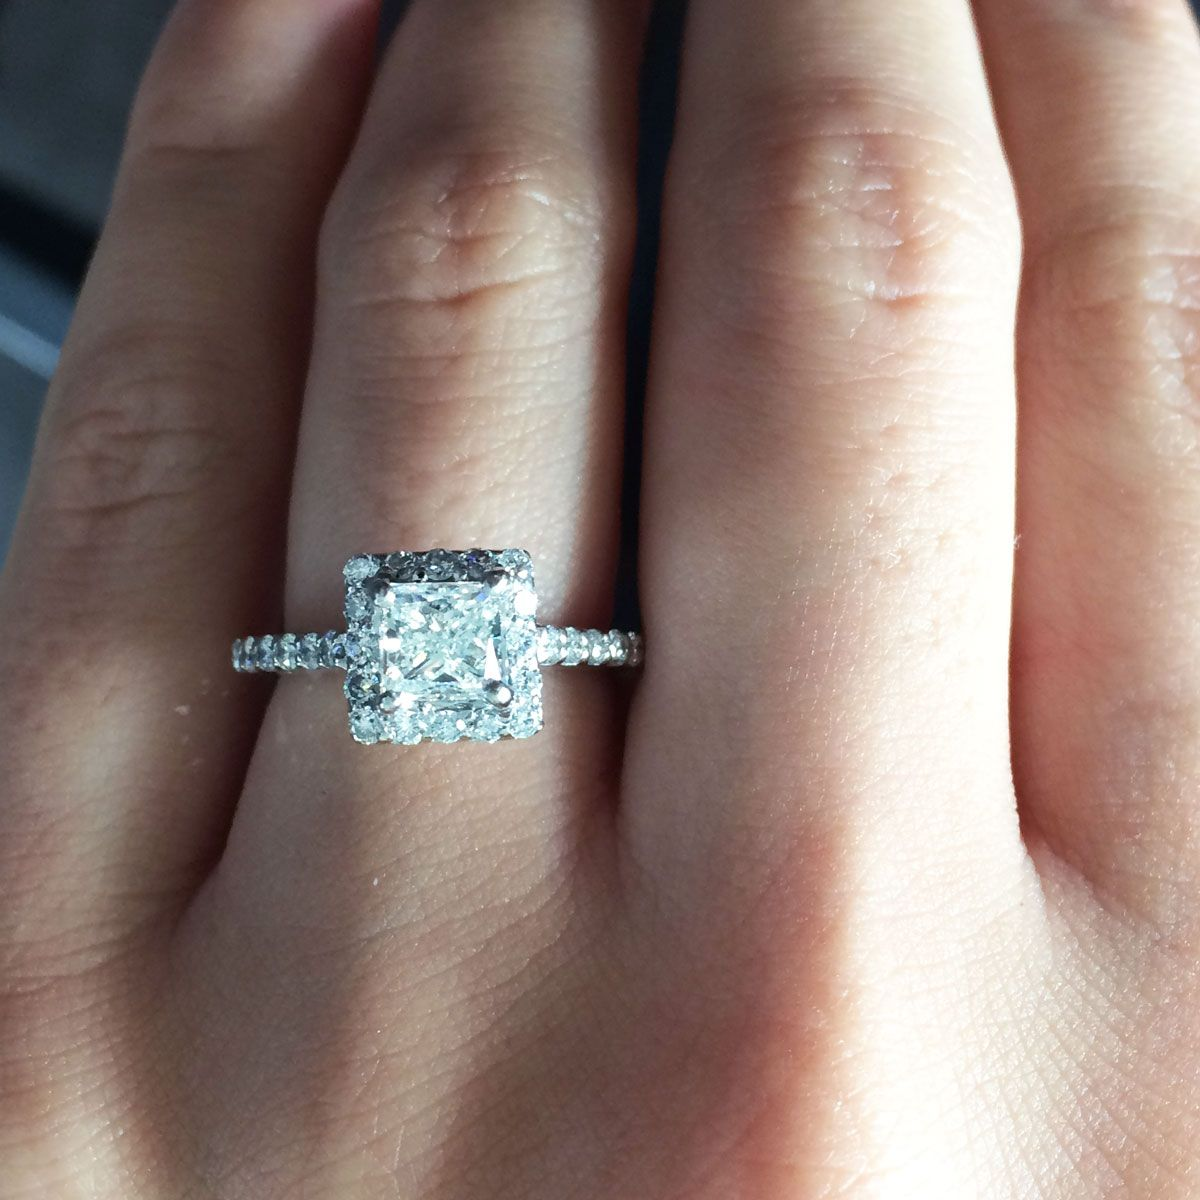 $10000 Engagement Ring And Under Eye Candy